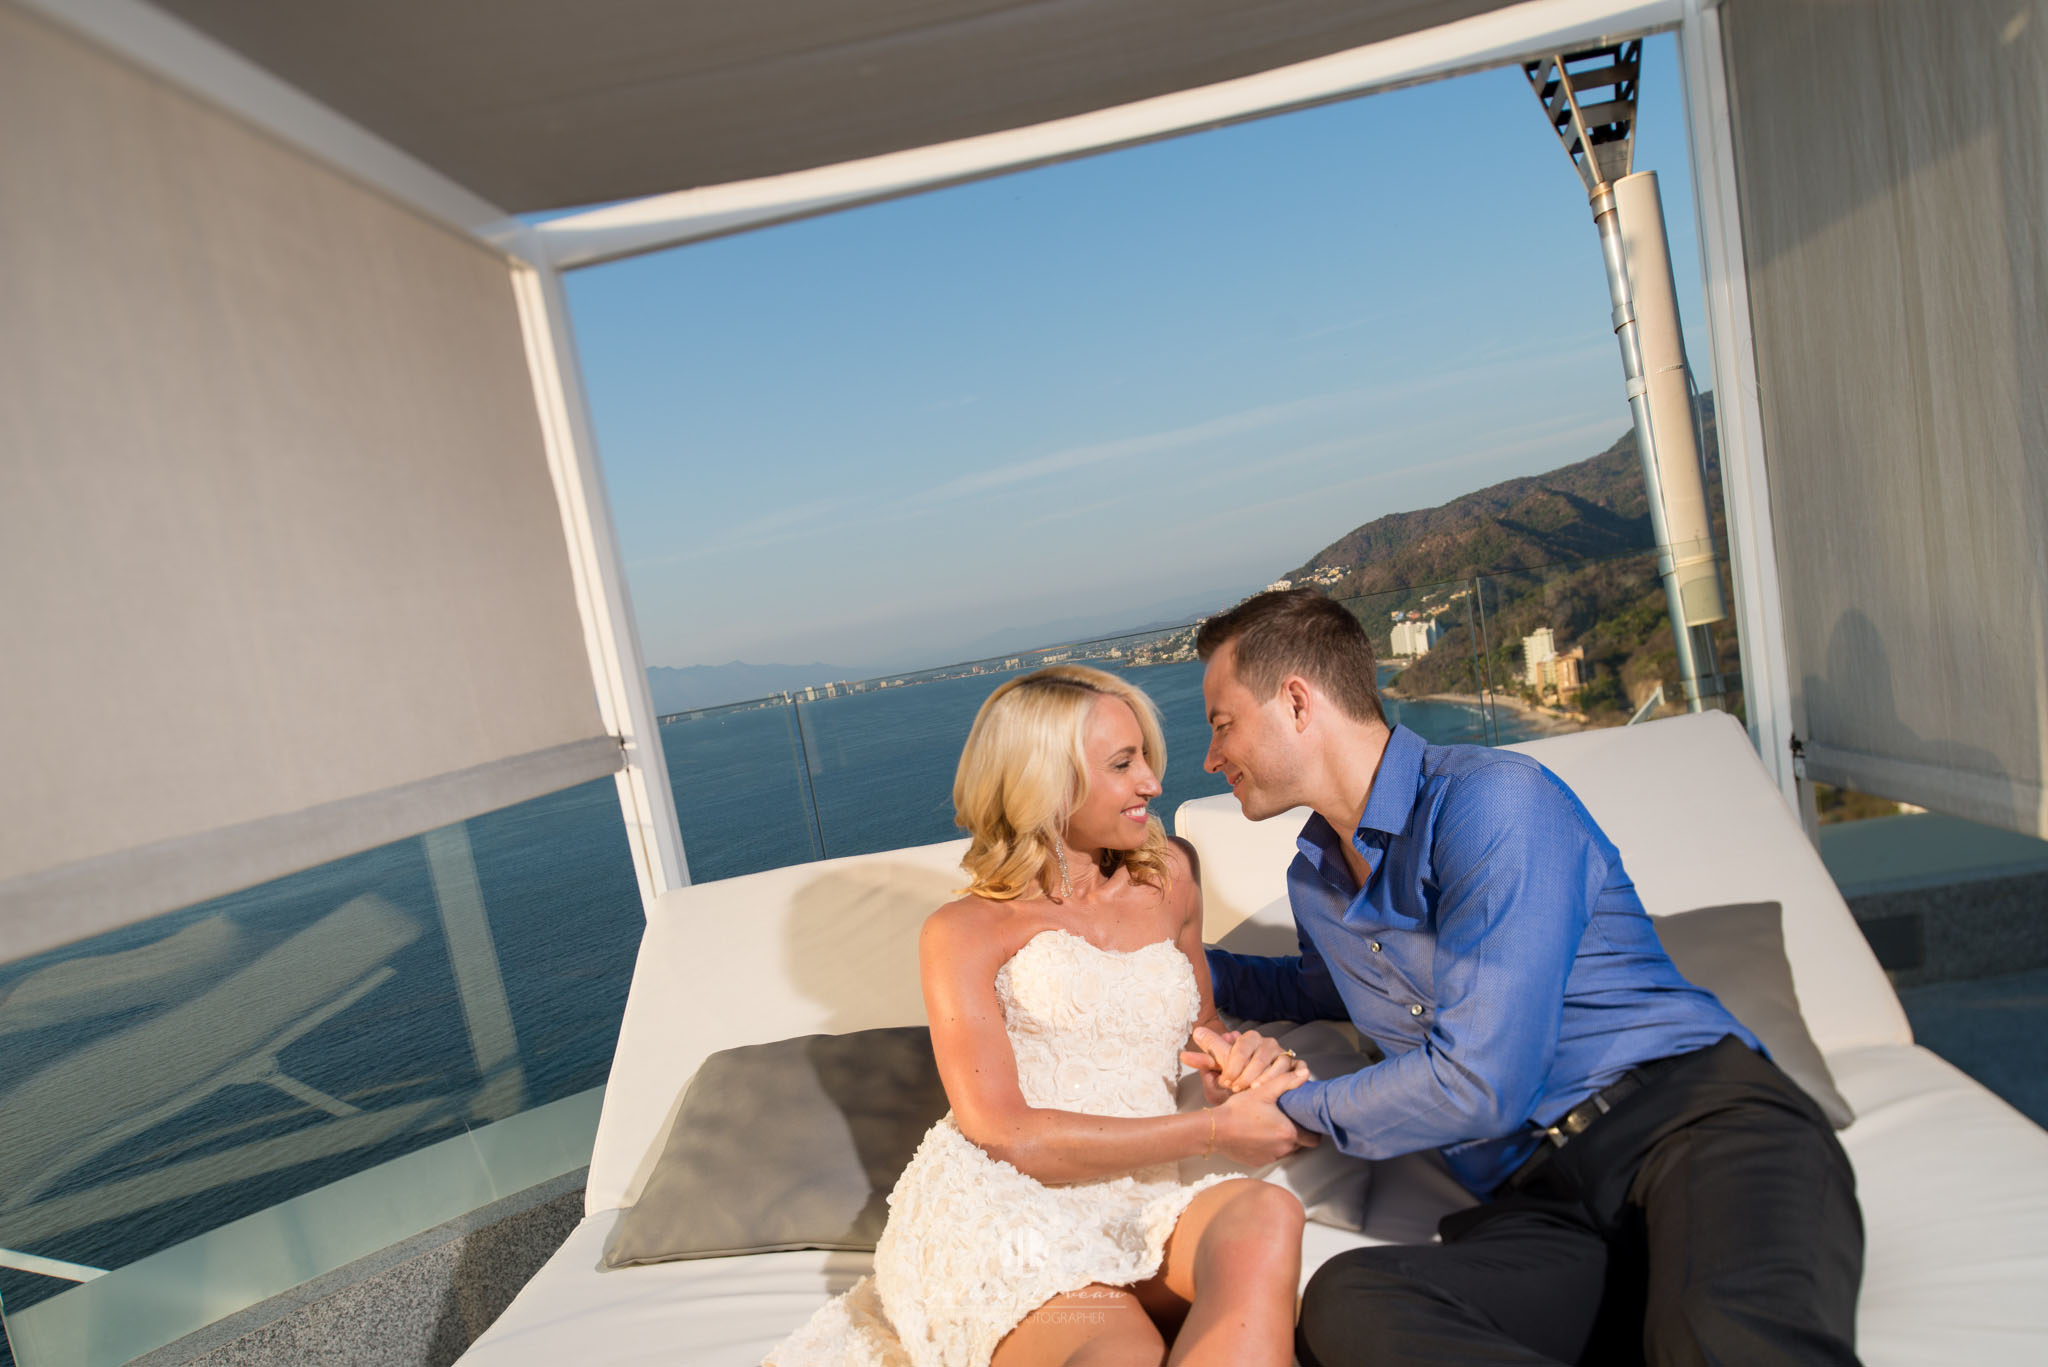 Engagement photo shoot in Puerto Vallarta Gaarza Blanca